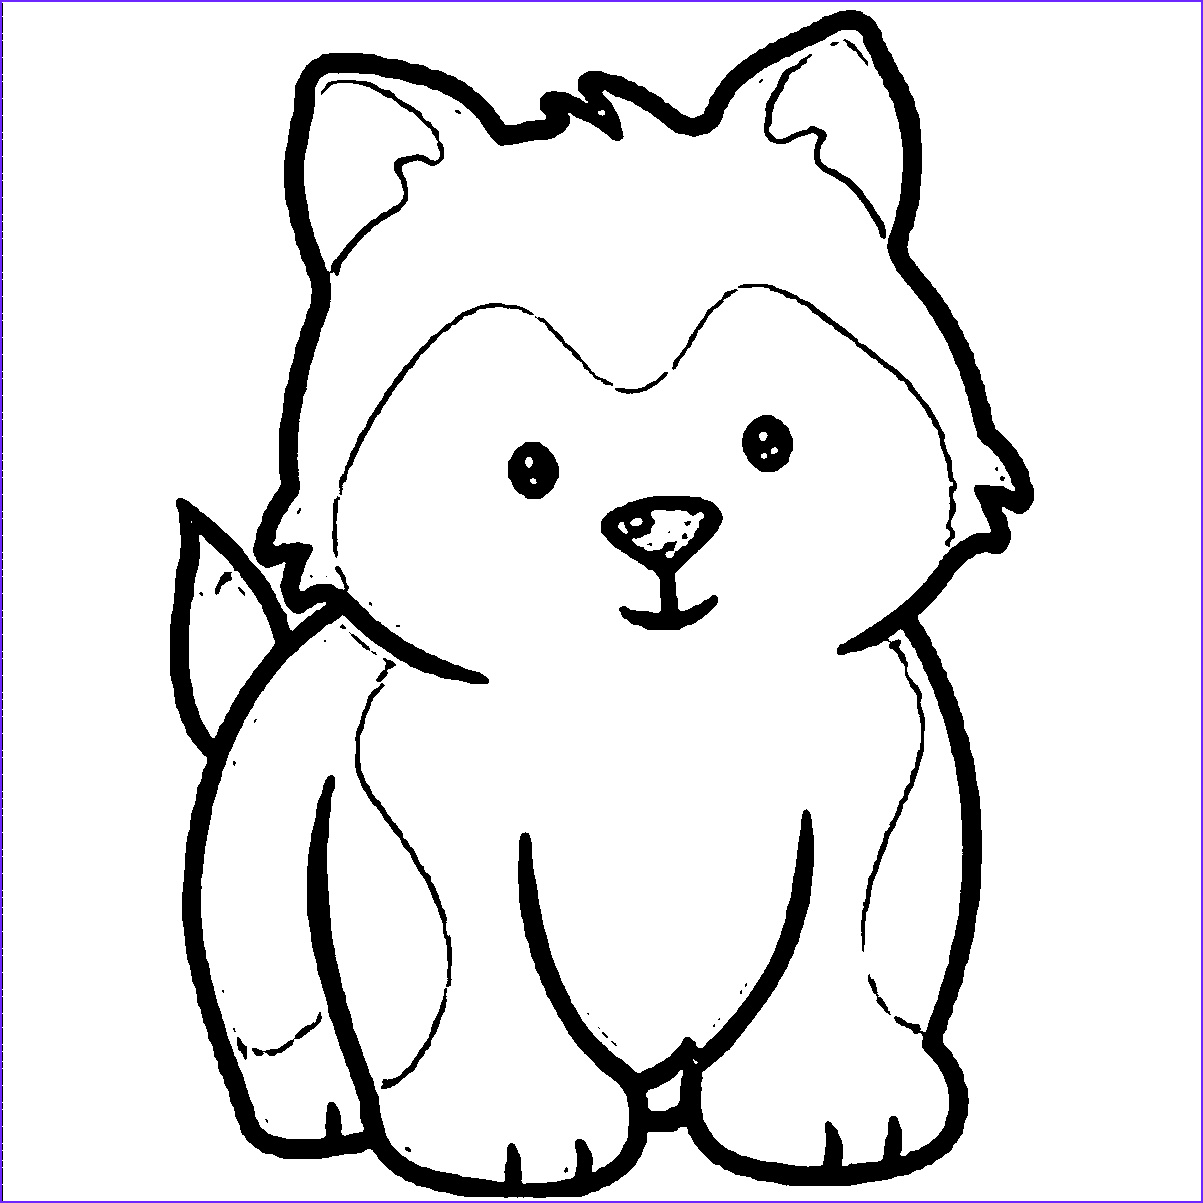 Puppies Coloring Picture Beautiful Photos Husky Puppies Coloring Pages Download Coloring for Kids 2019